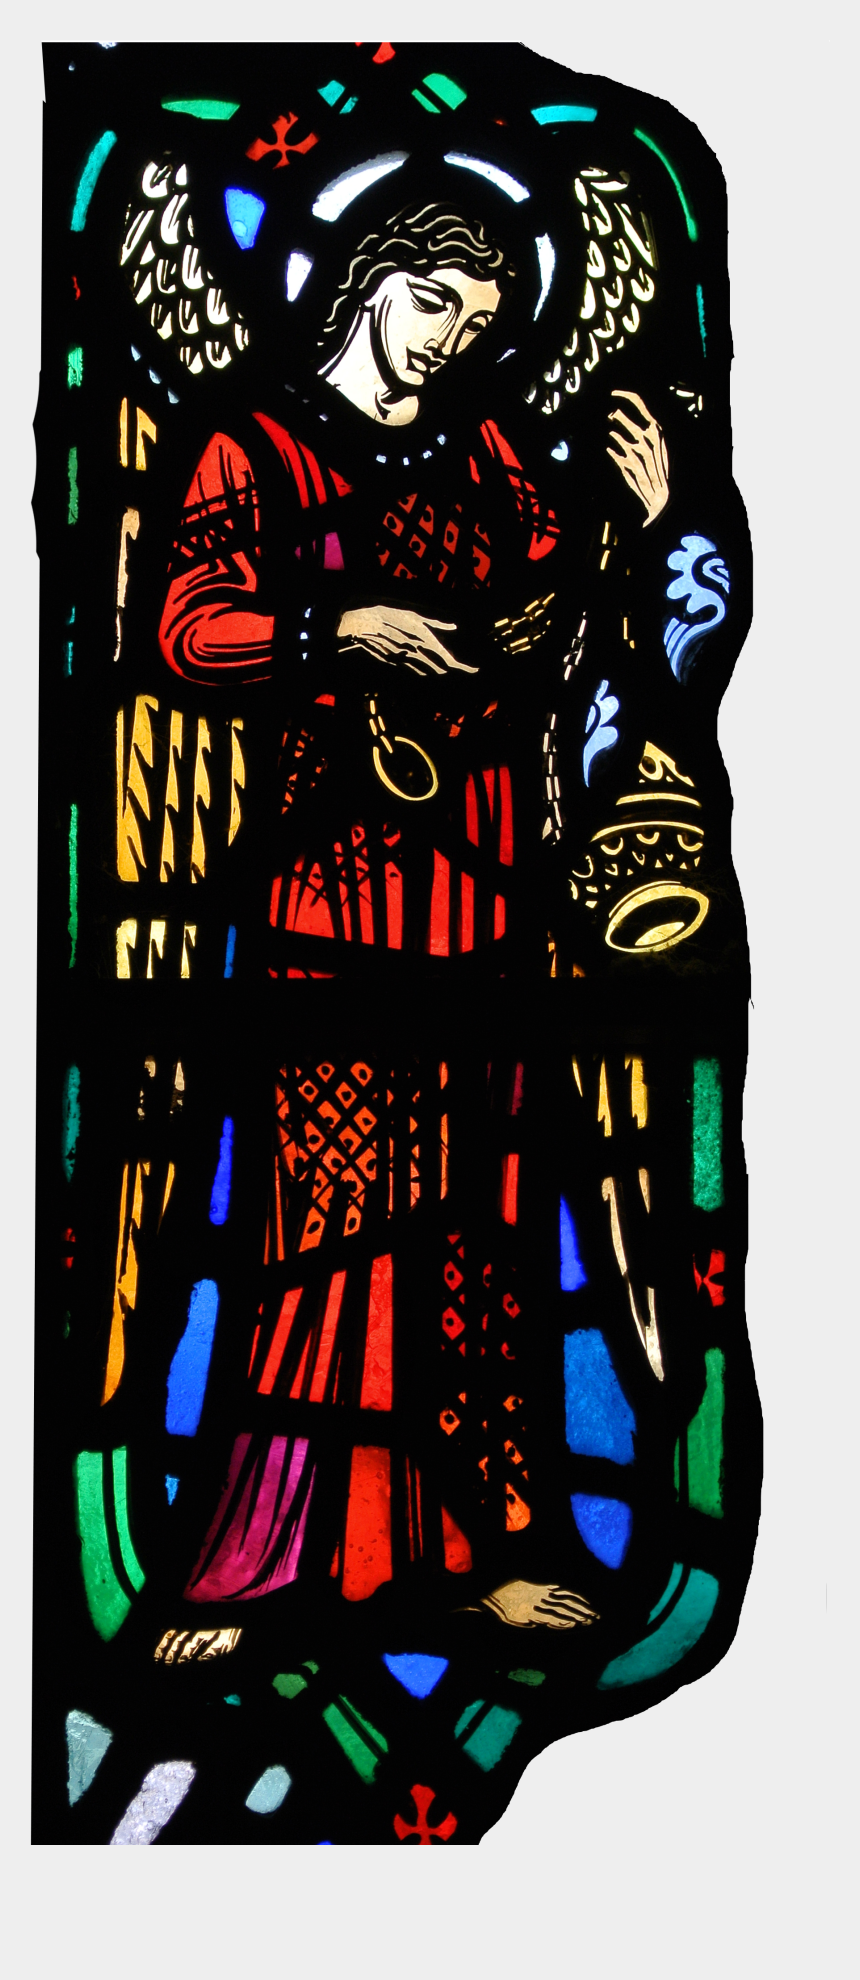 church windows clipart, Cartoons - The Subject Is The History Of Monumental Stained Glass - Illustration